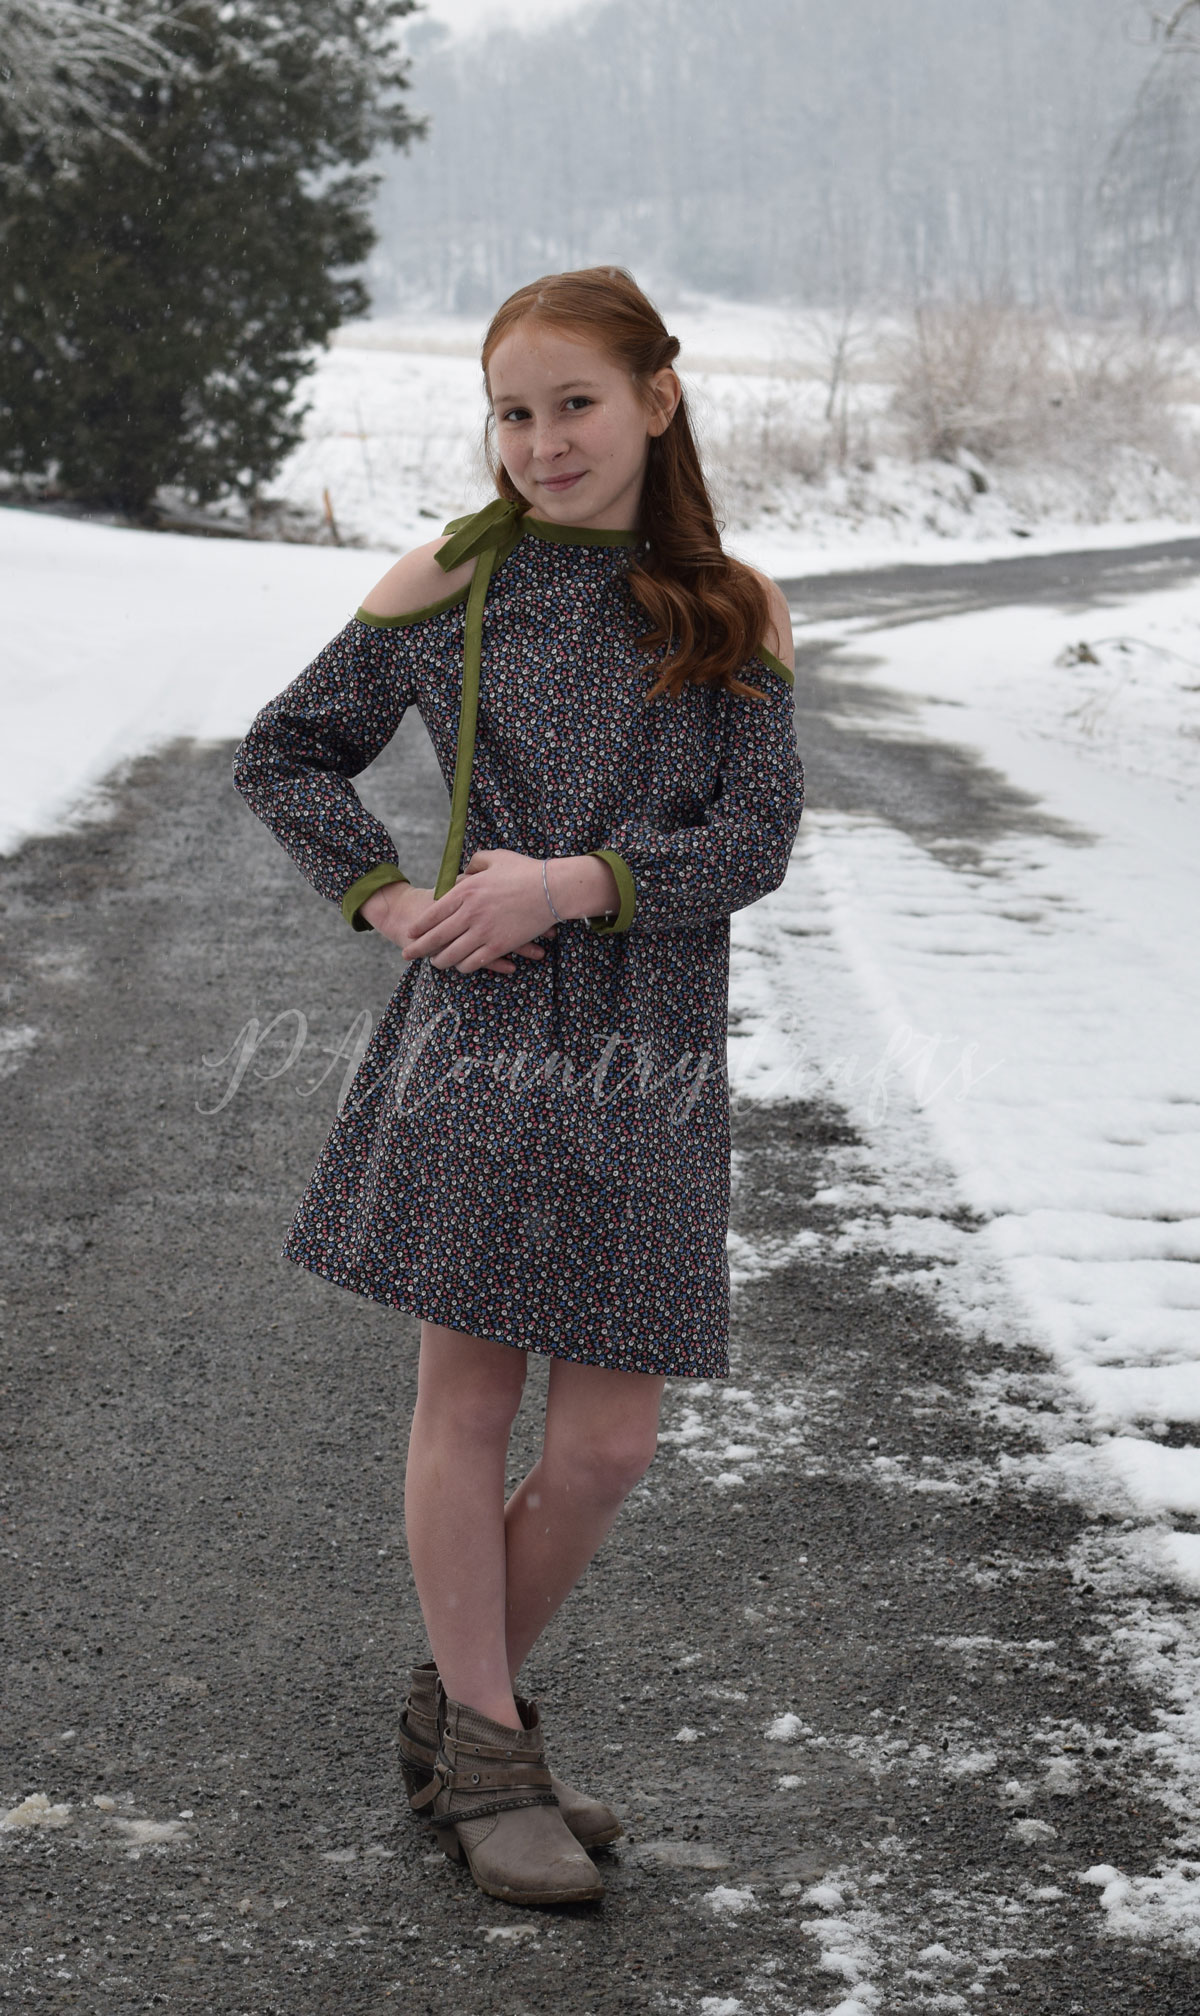 Retro style girls dress with a 70s silhouette and cut out shoulders